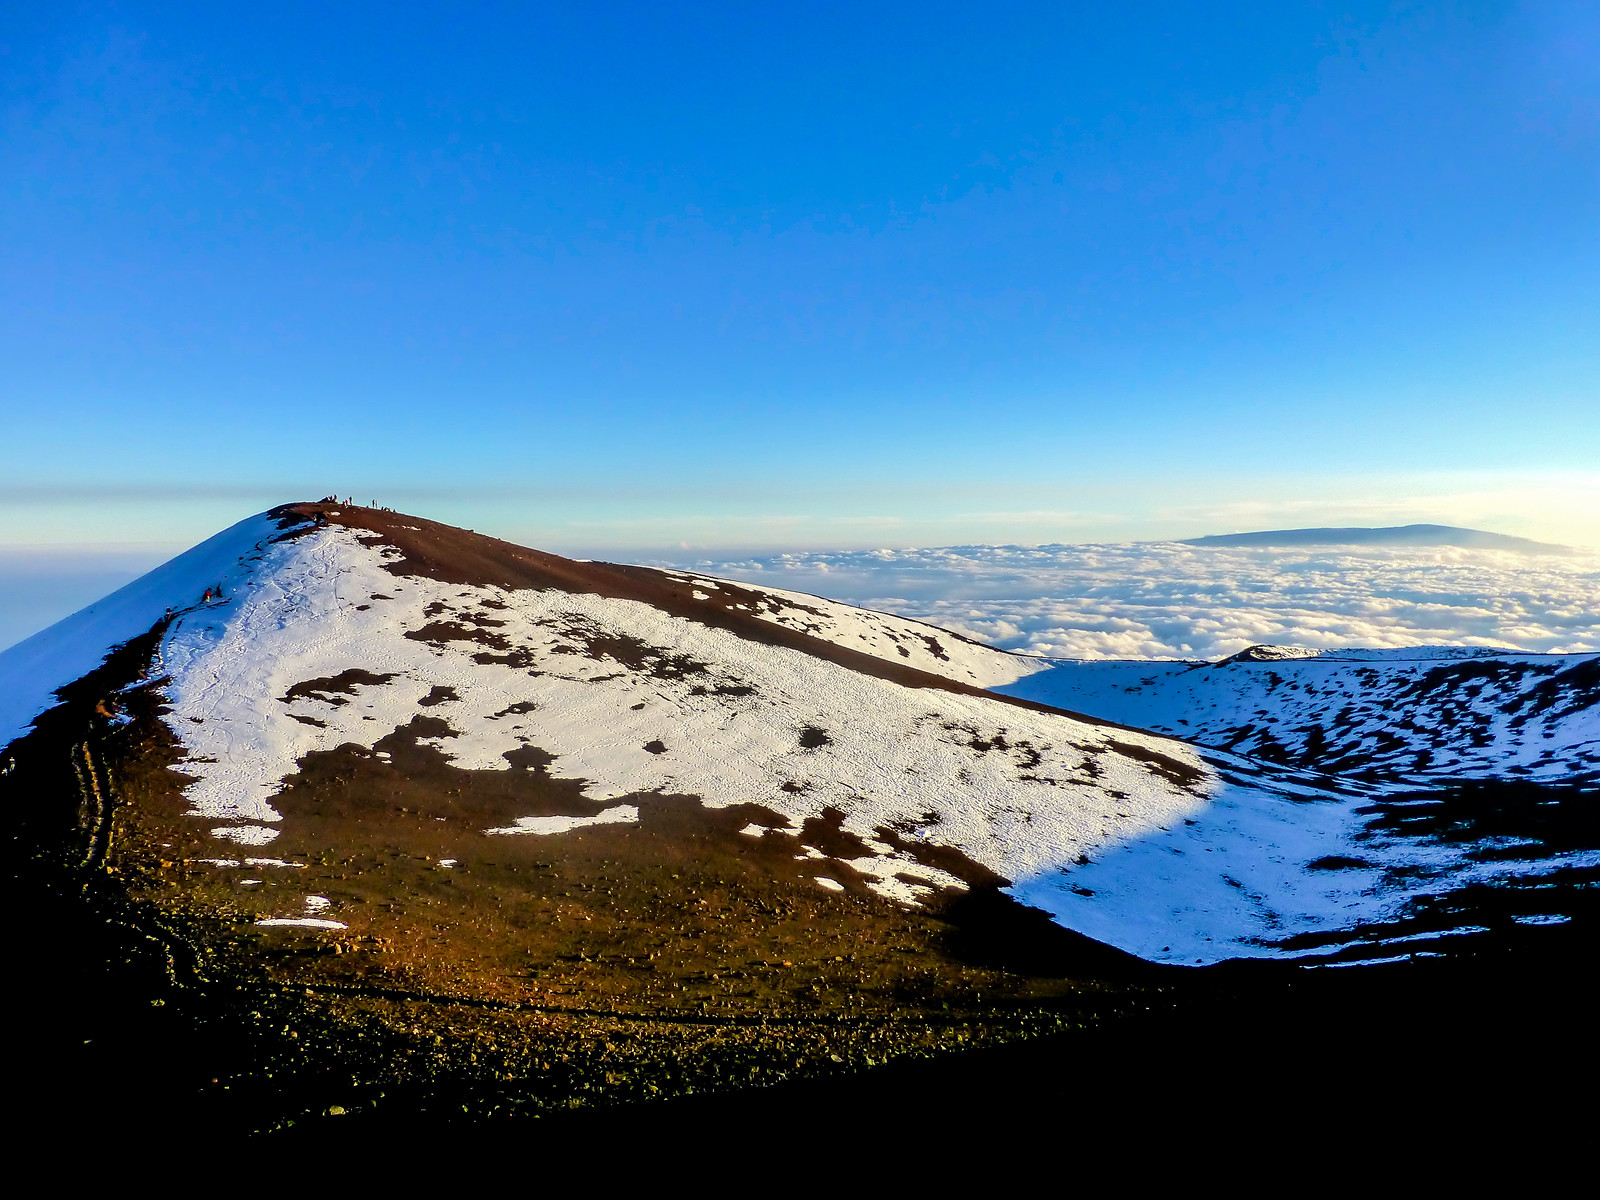 Mauna Kea Summit in Hawaii